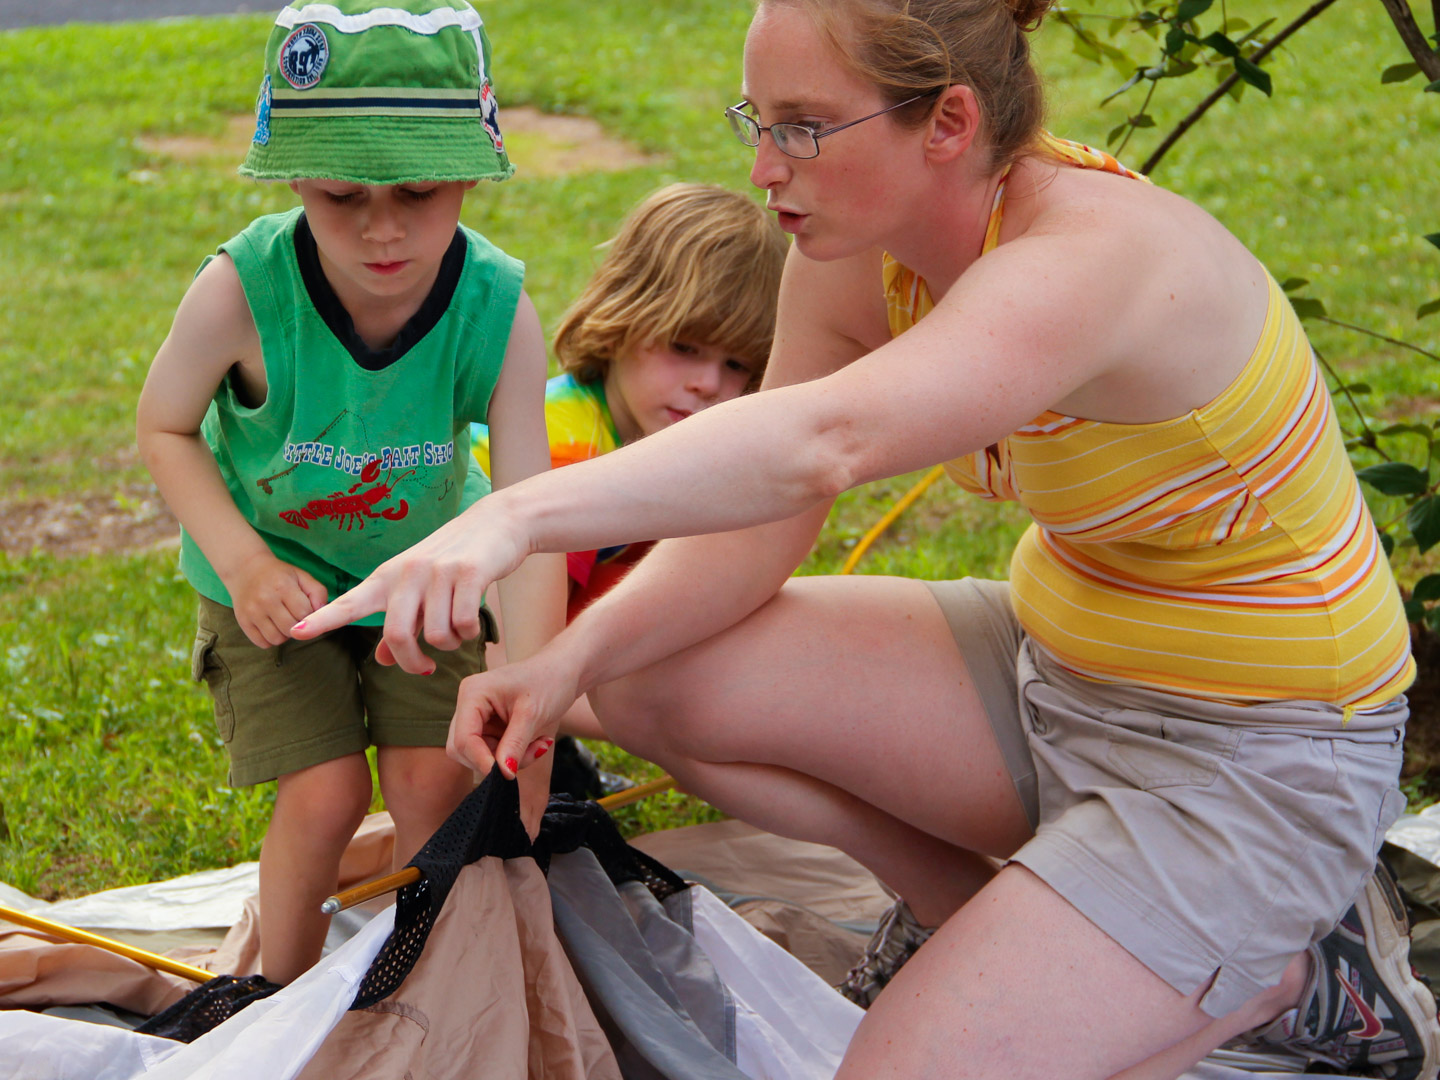 Young campers learning to put up a tent